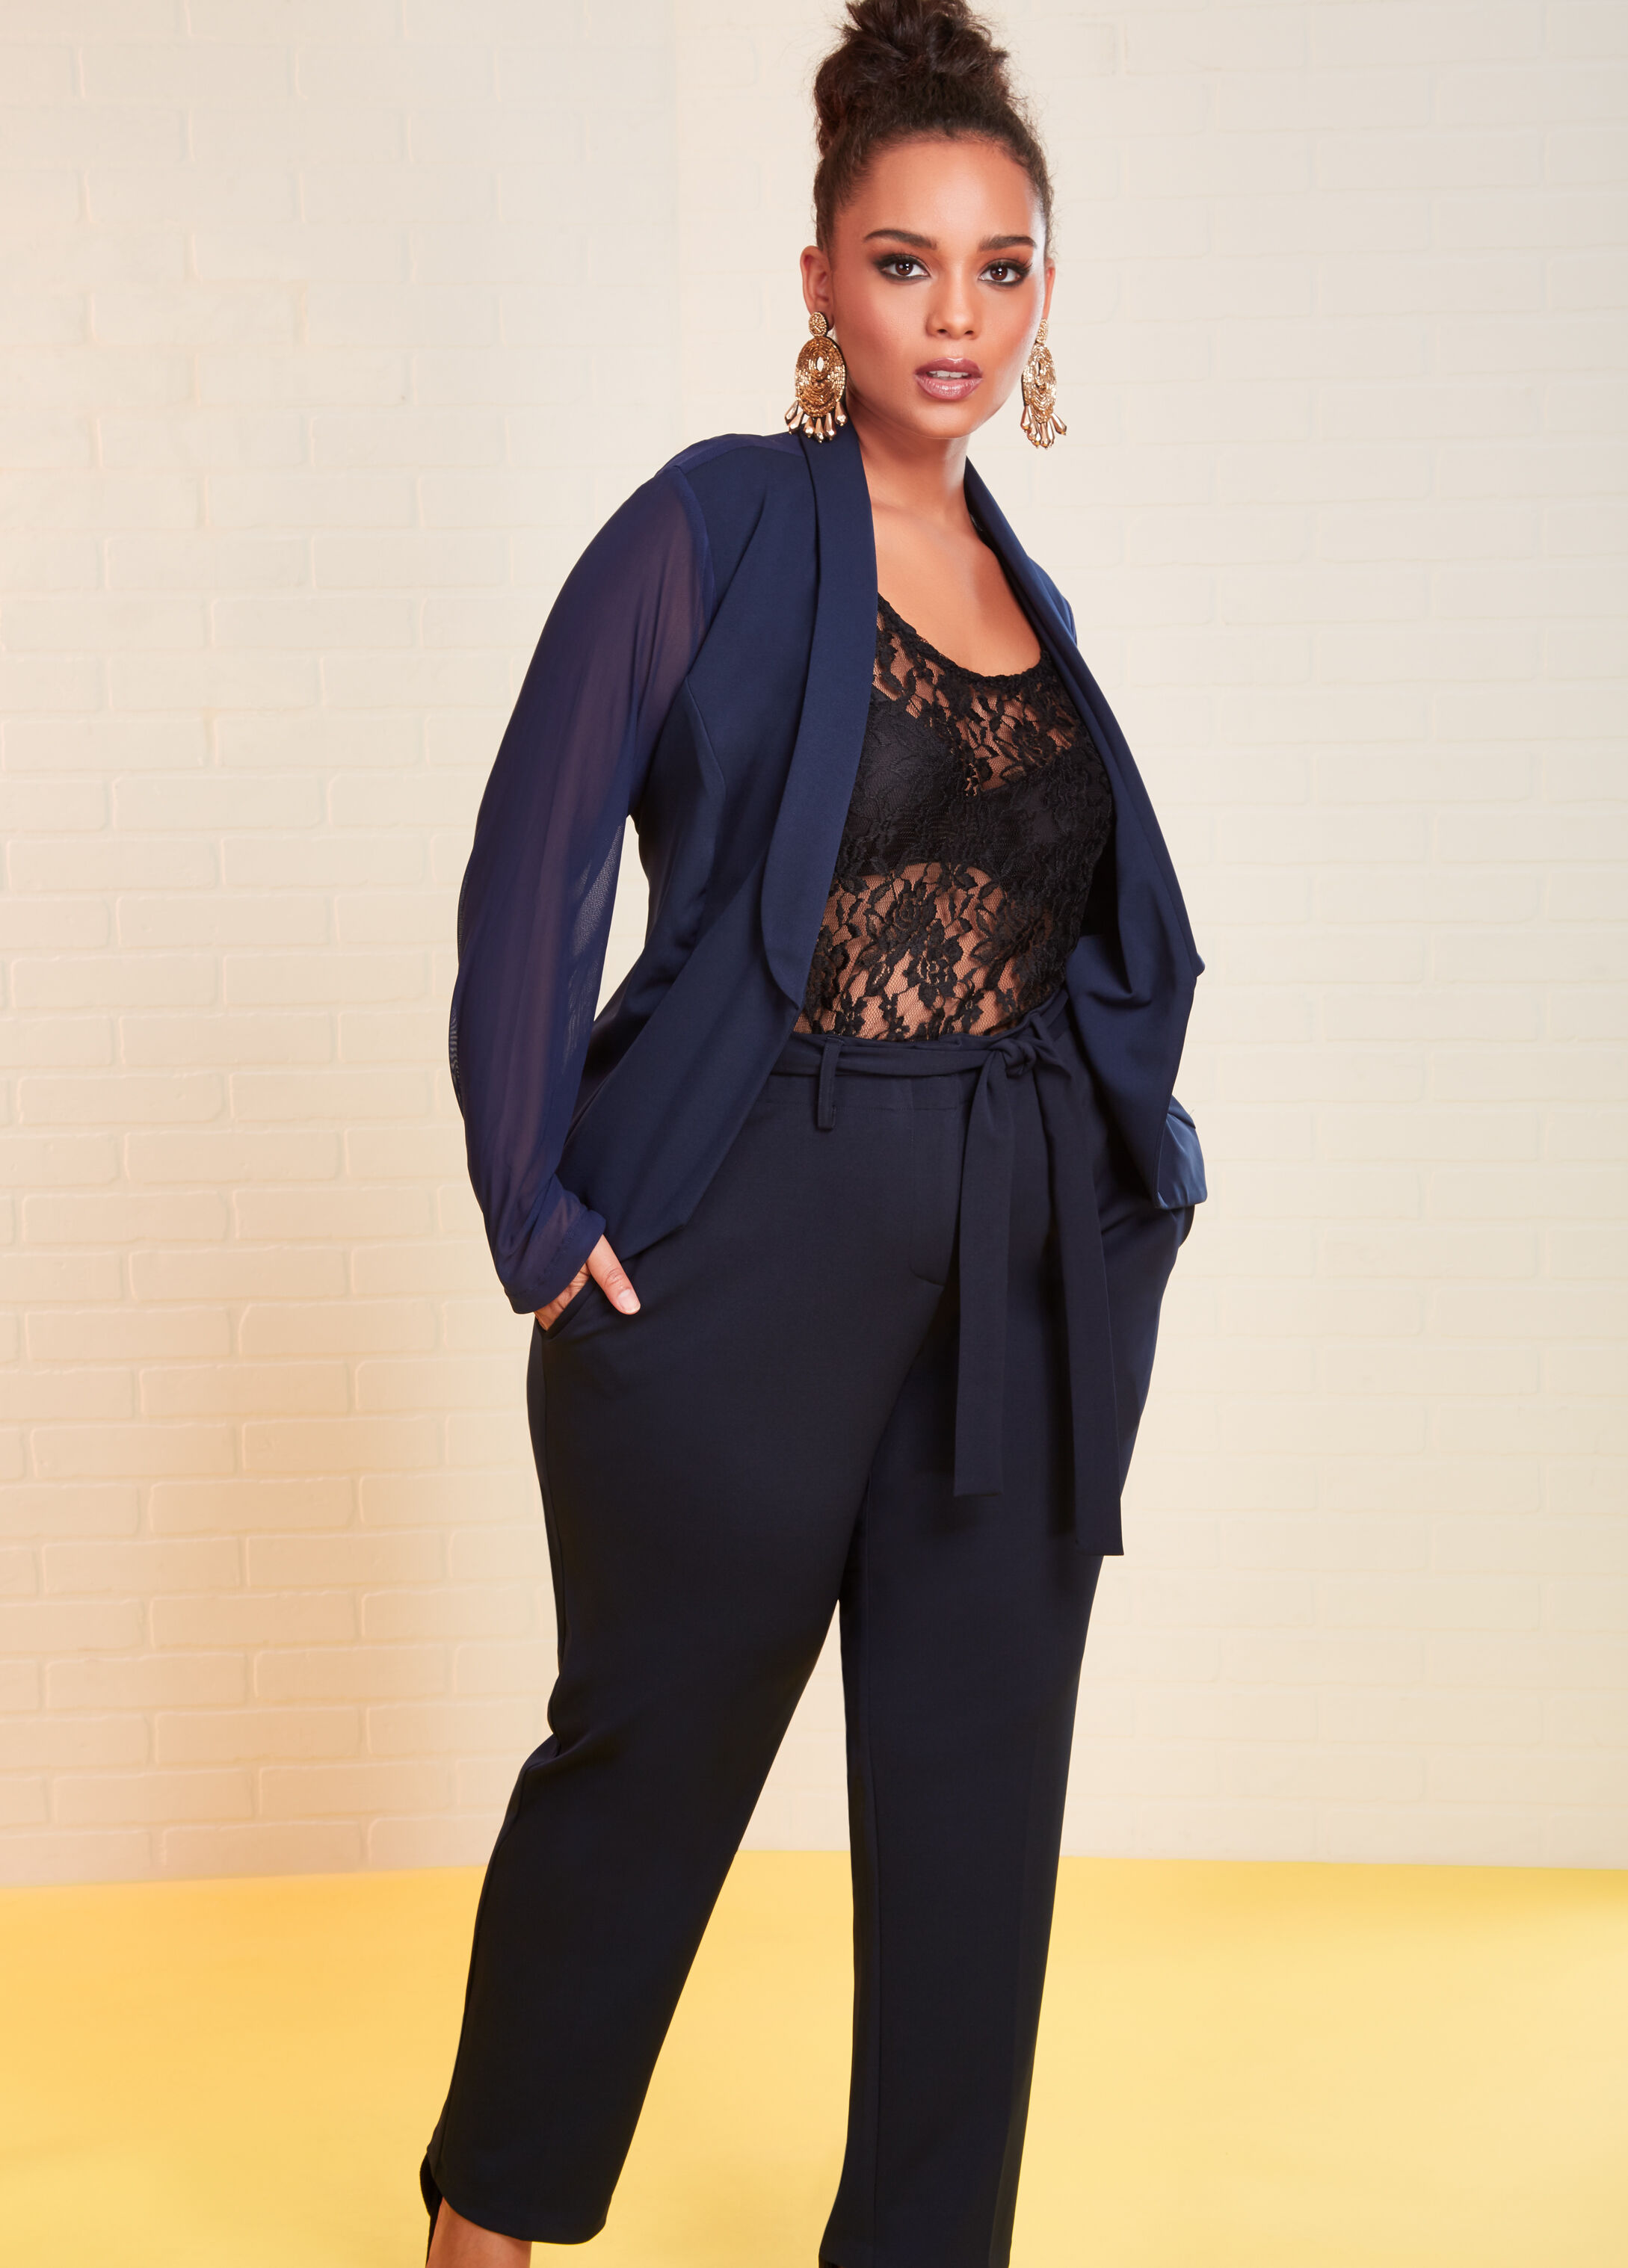 Plus Size Outfits - Mesh Ponte Blazer with Lace Cami and Trouser